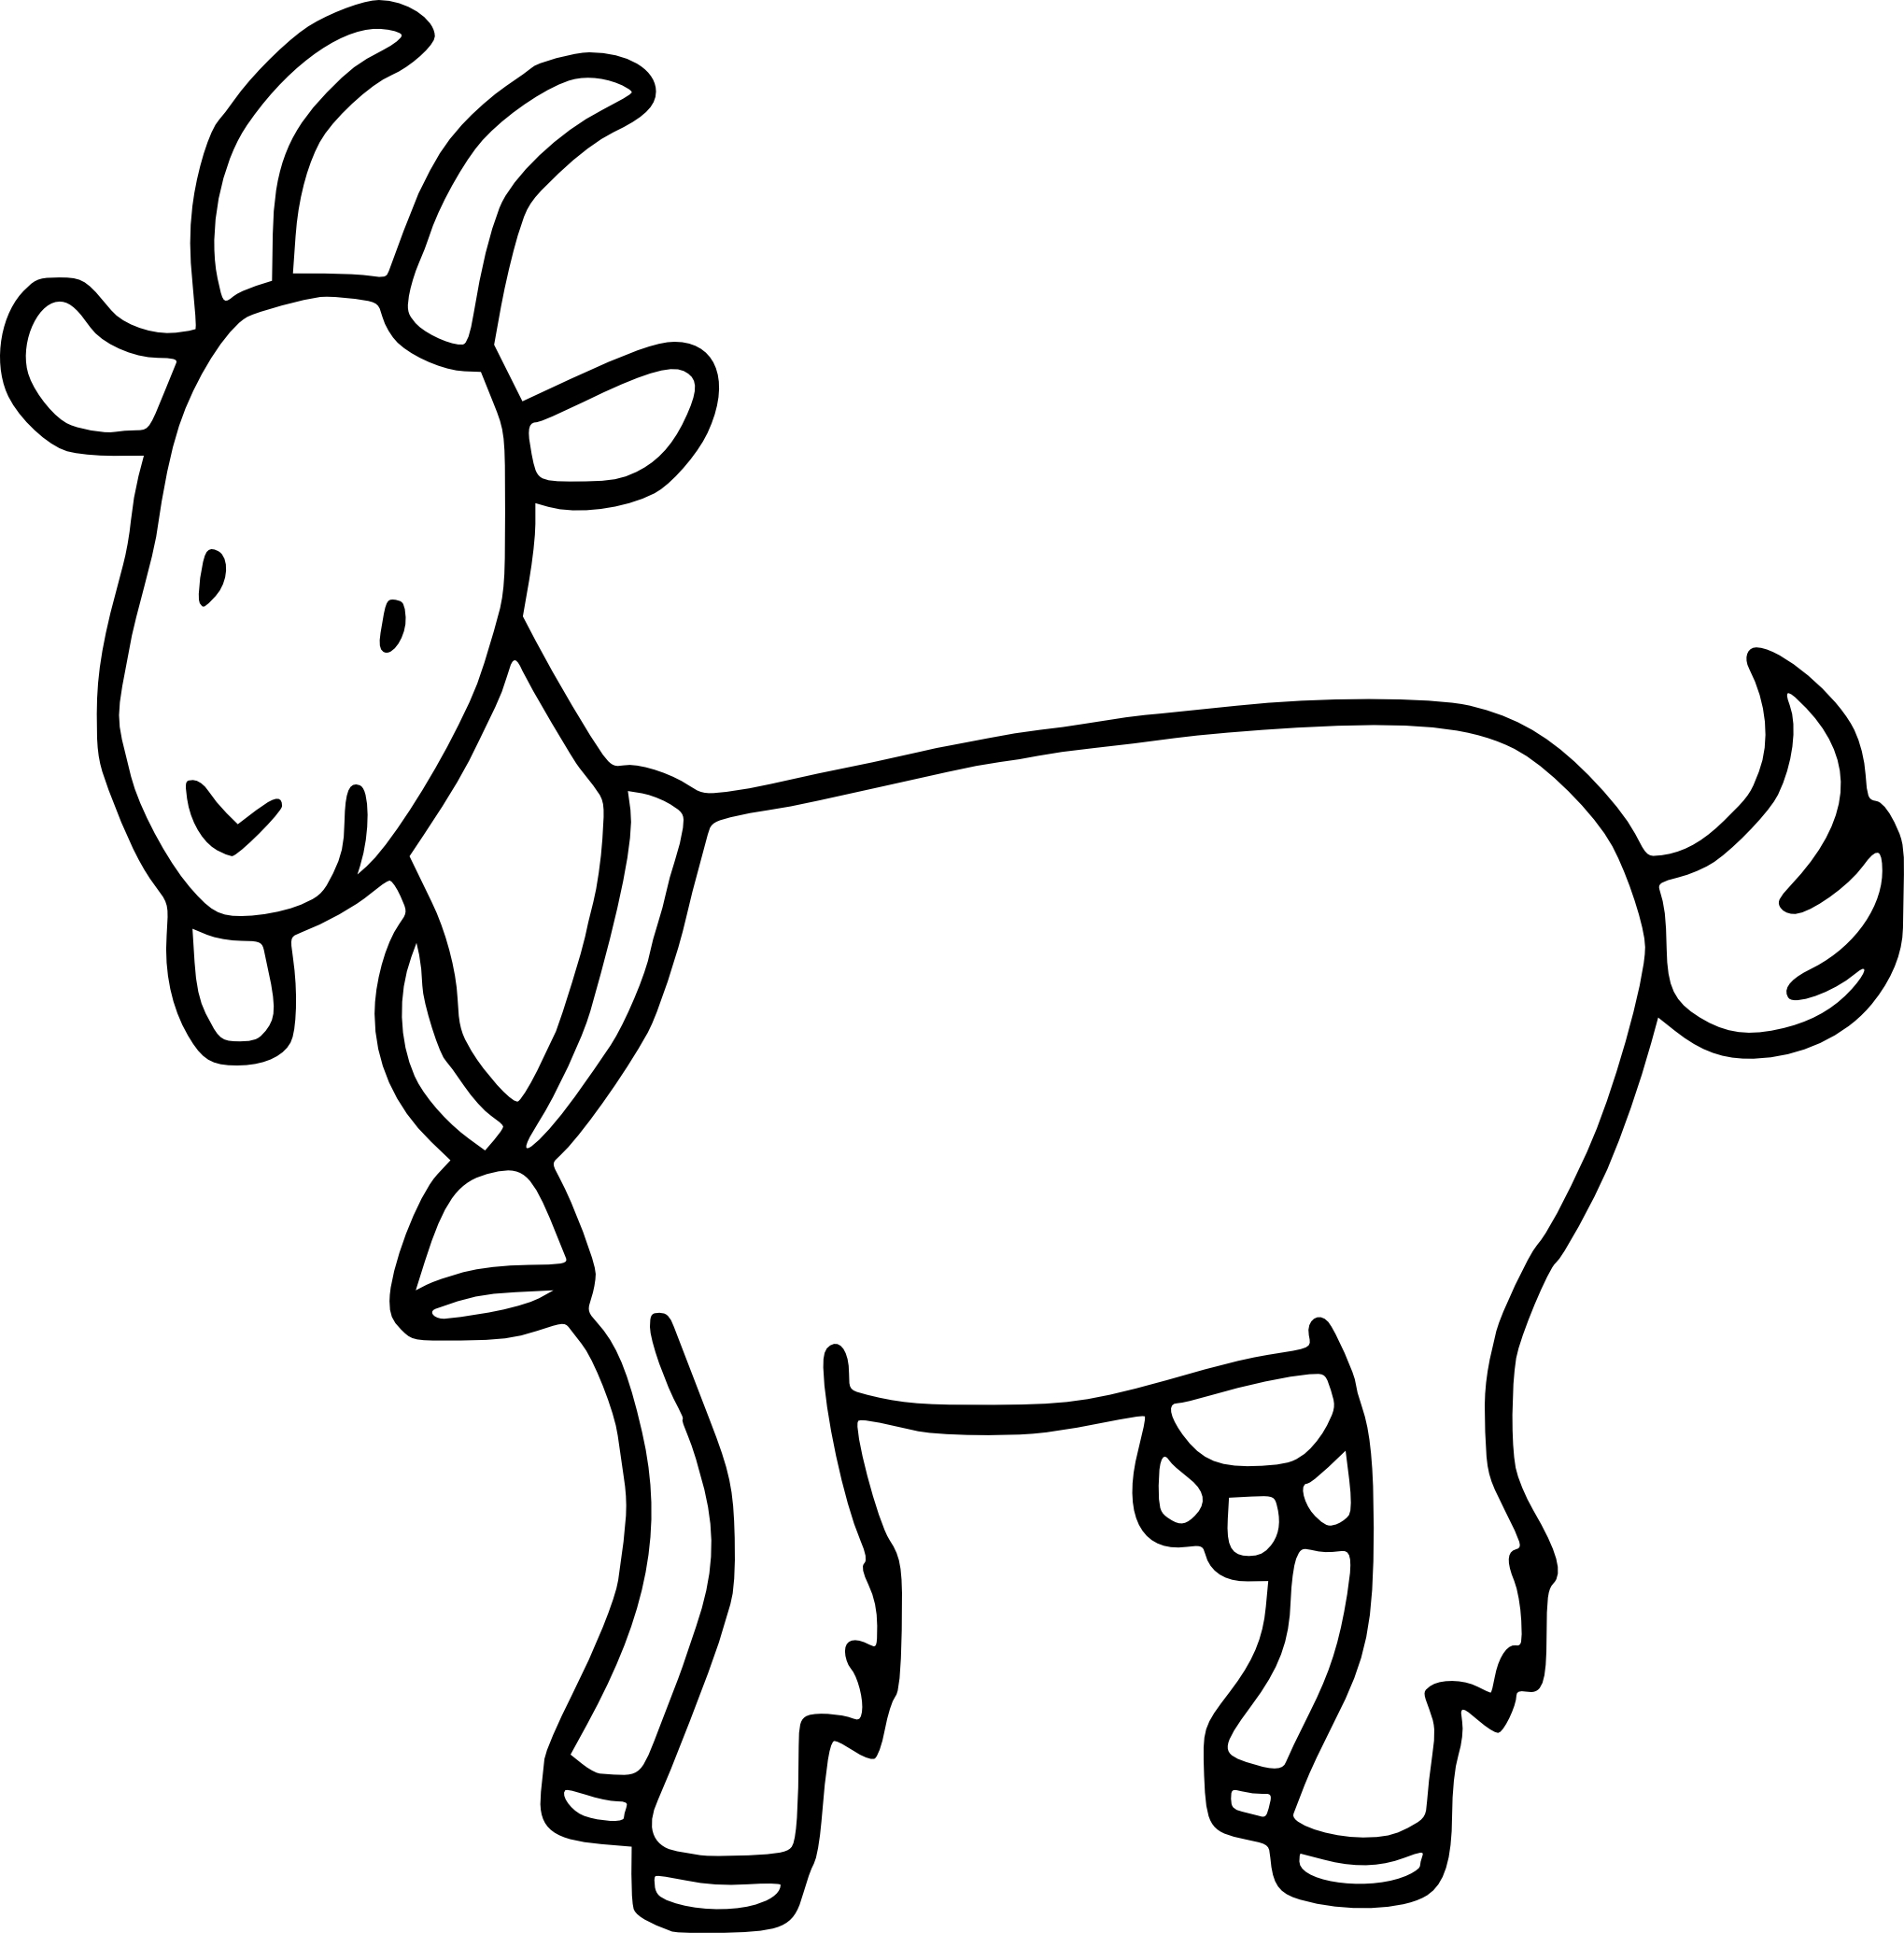 th?id=OIP.AOqU jRUgGFW_lf1rCgLgAEnEs&pid=15.1 along with baby goat coloring pages 1 on baby goat coloring pages together with baby goat coloring pages 2 on baby goat coloring pages including baby goat coloring pages 3 on baby goat coloring pages along with baby goat coloring pages 4 on baby goat coloring pages